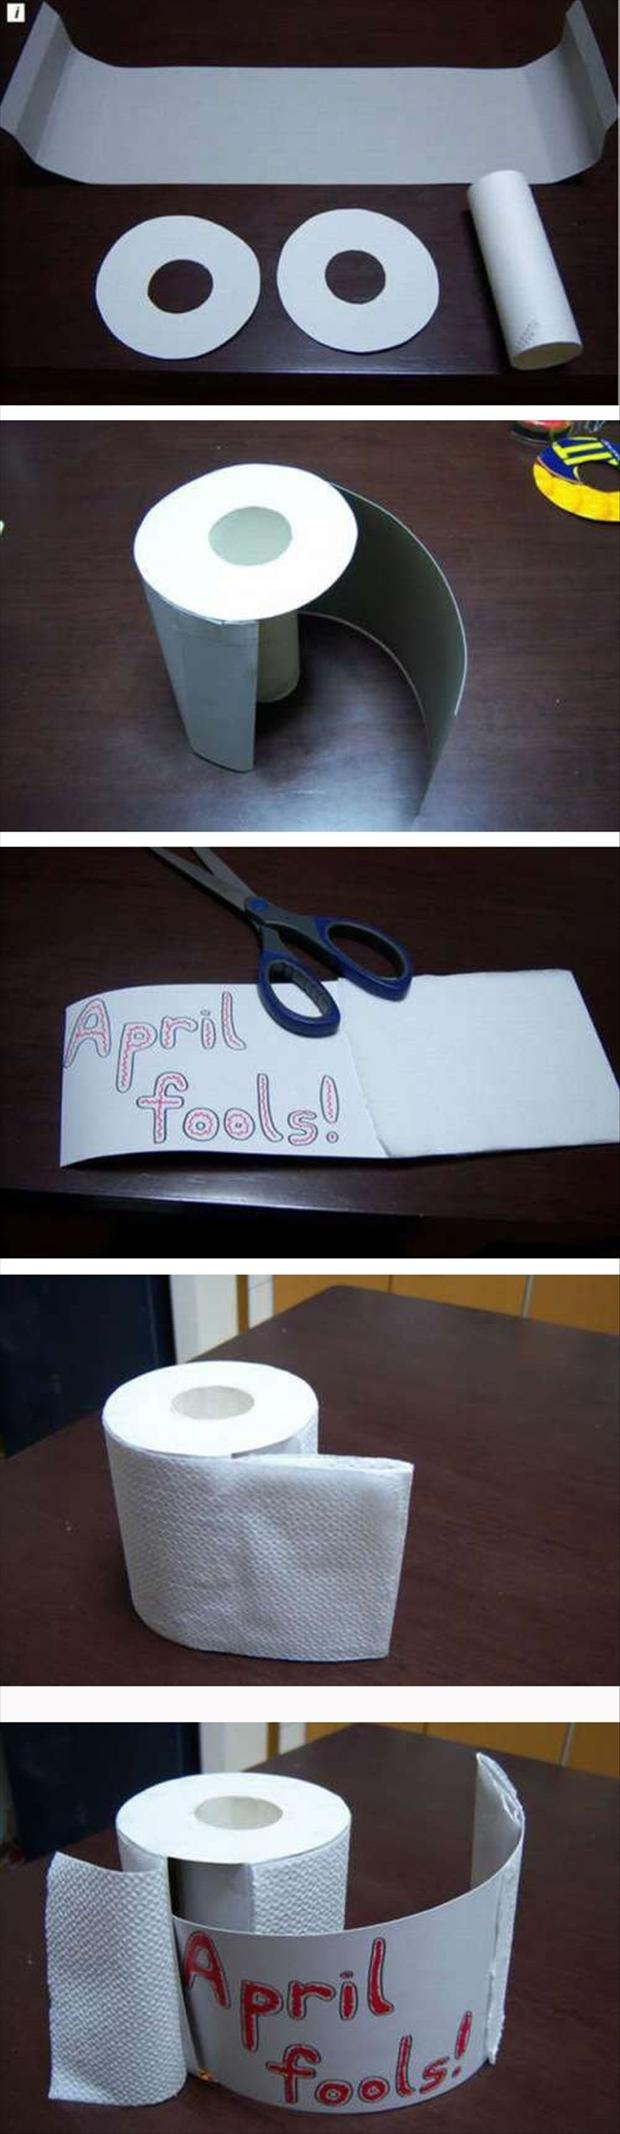 funny april fools day pranks